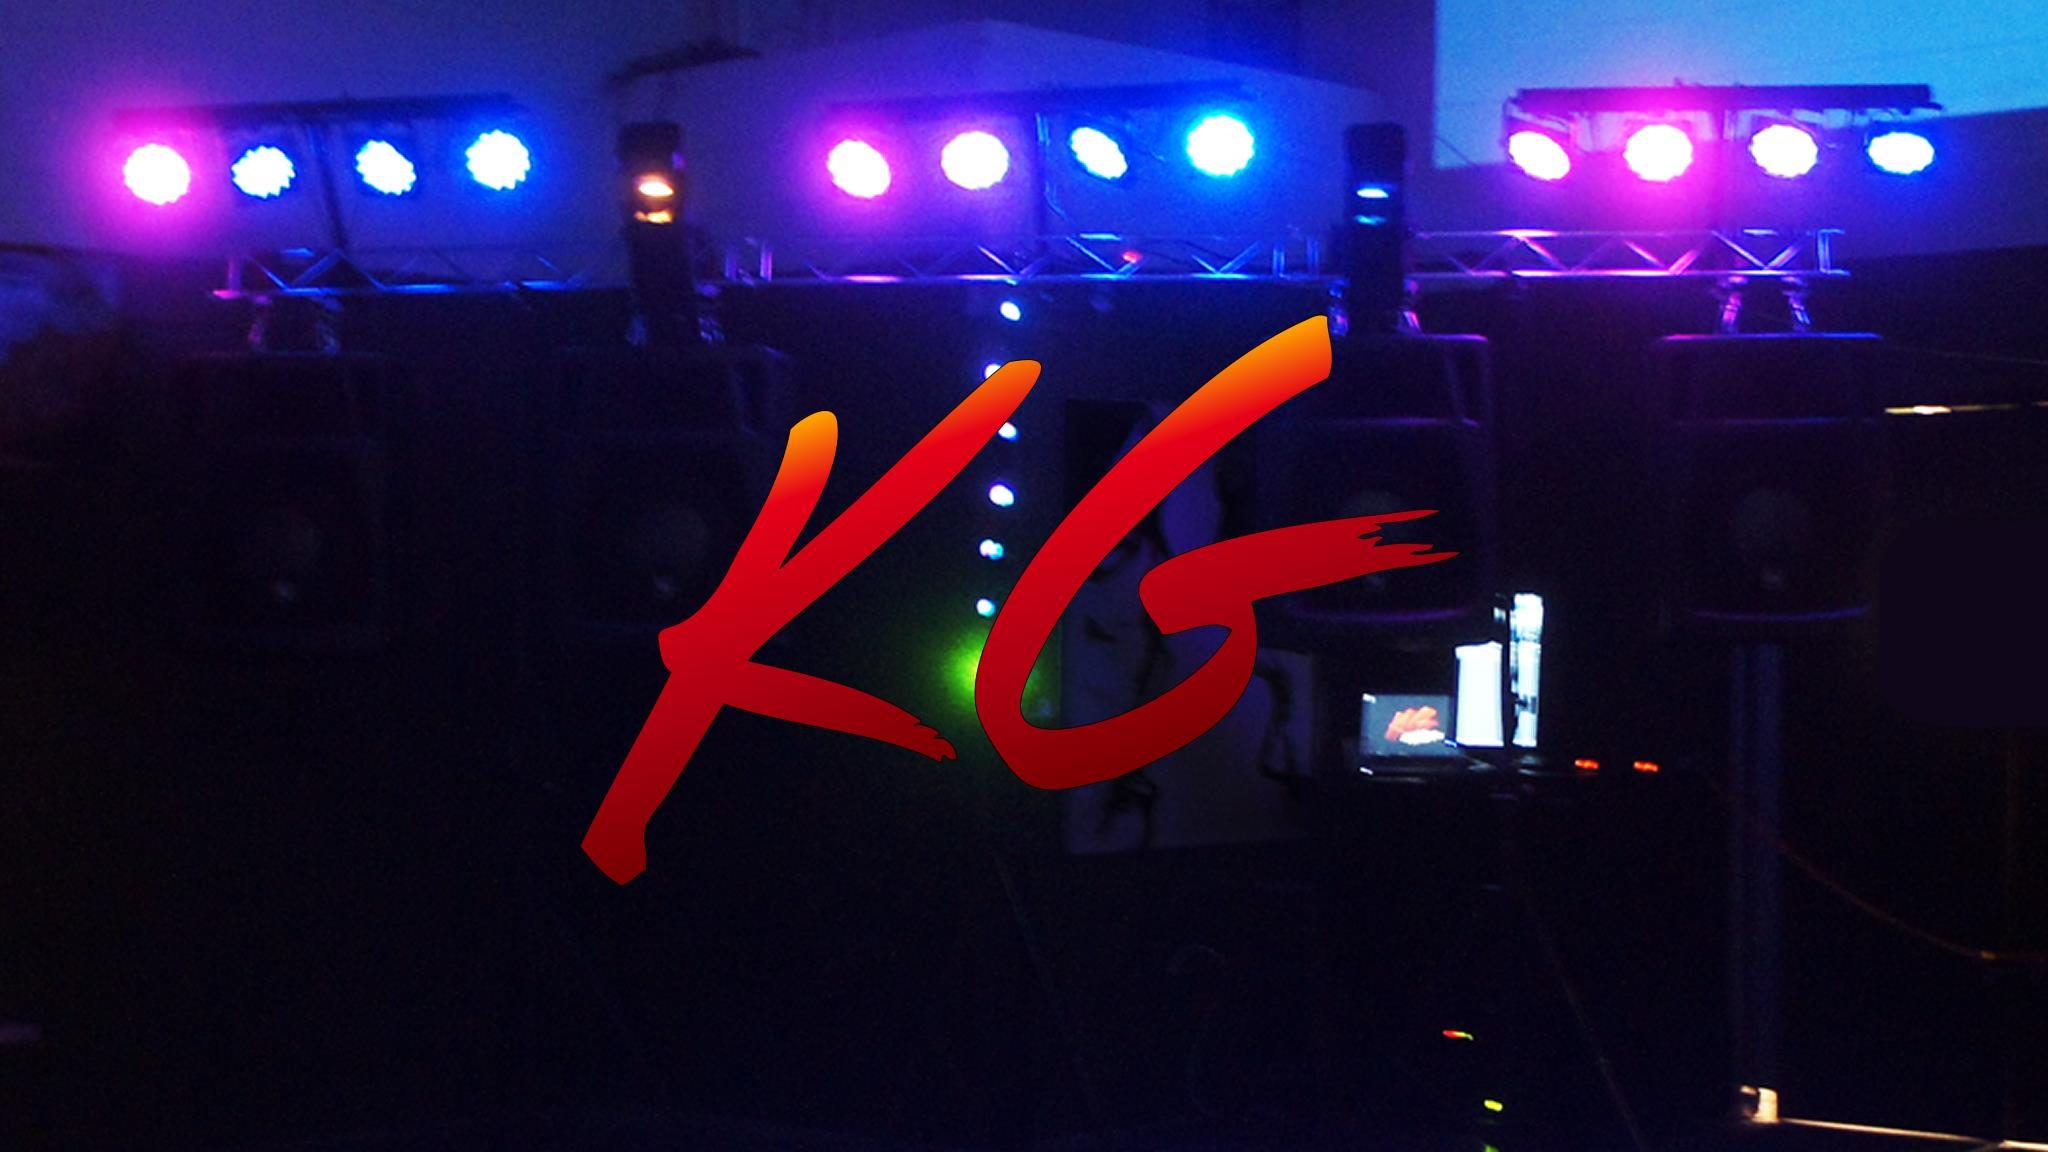 KG Media & Entertainment